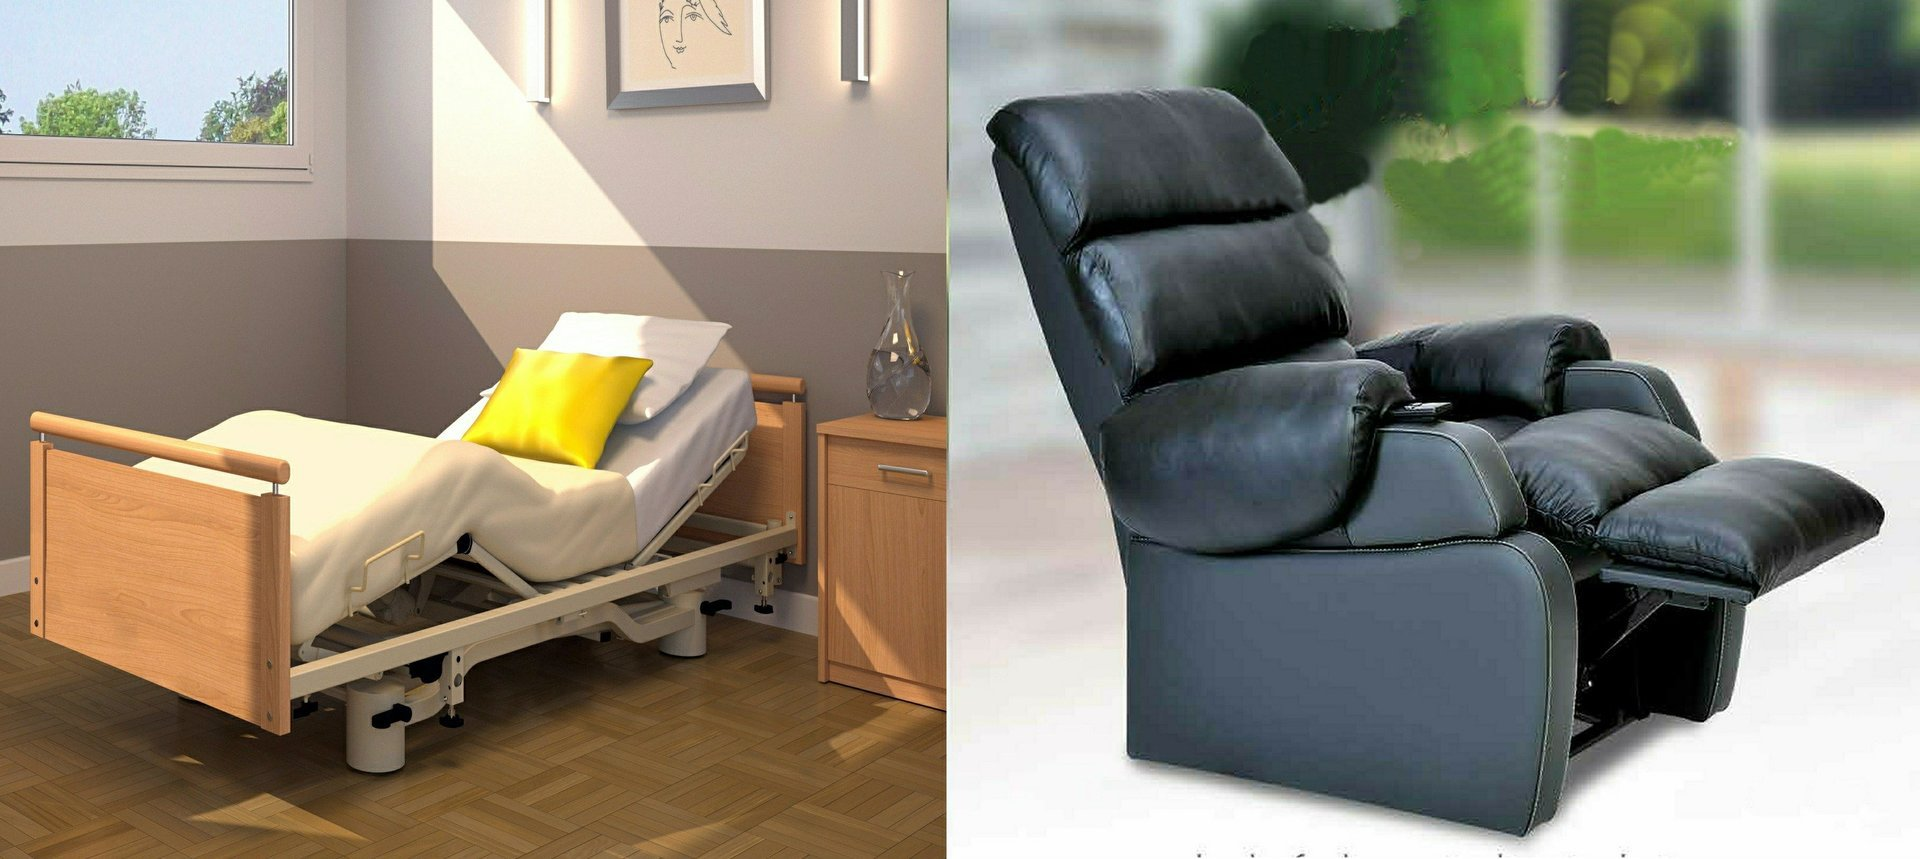 Electric Adjustable Beds for Elderly and Limited Mobility ...